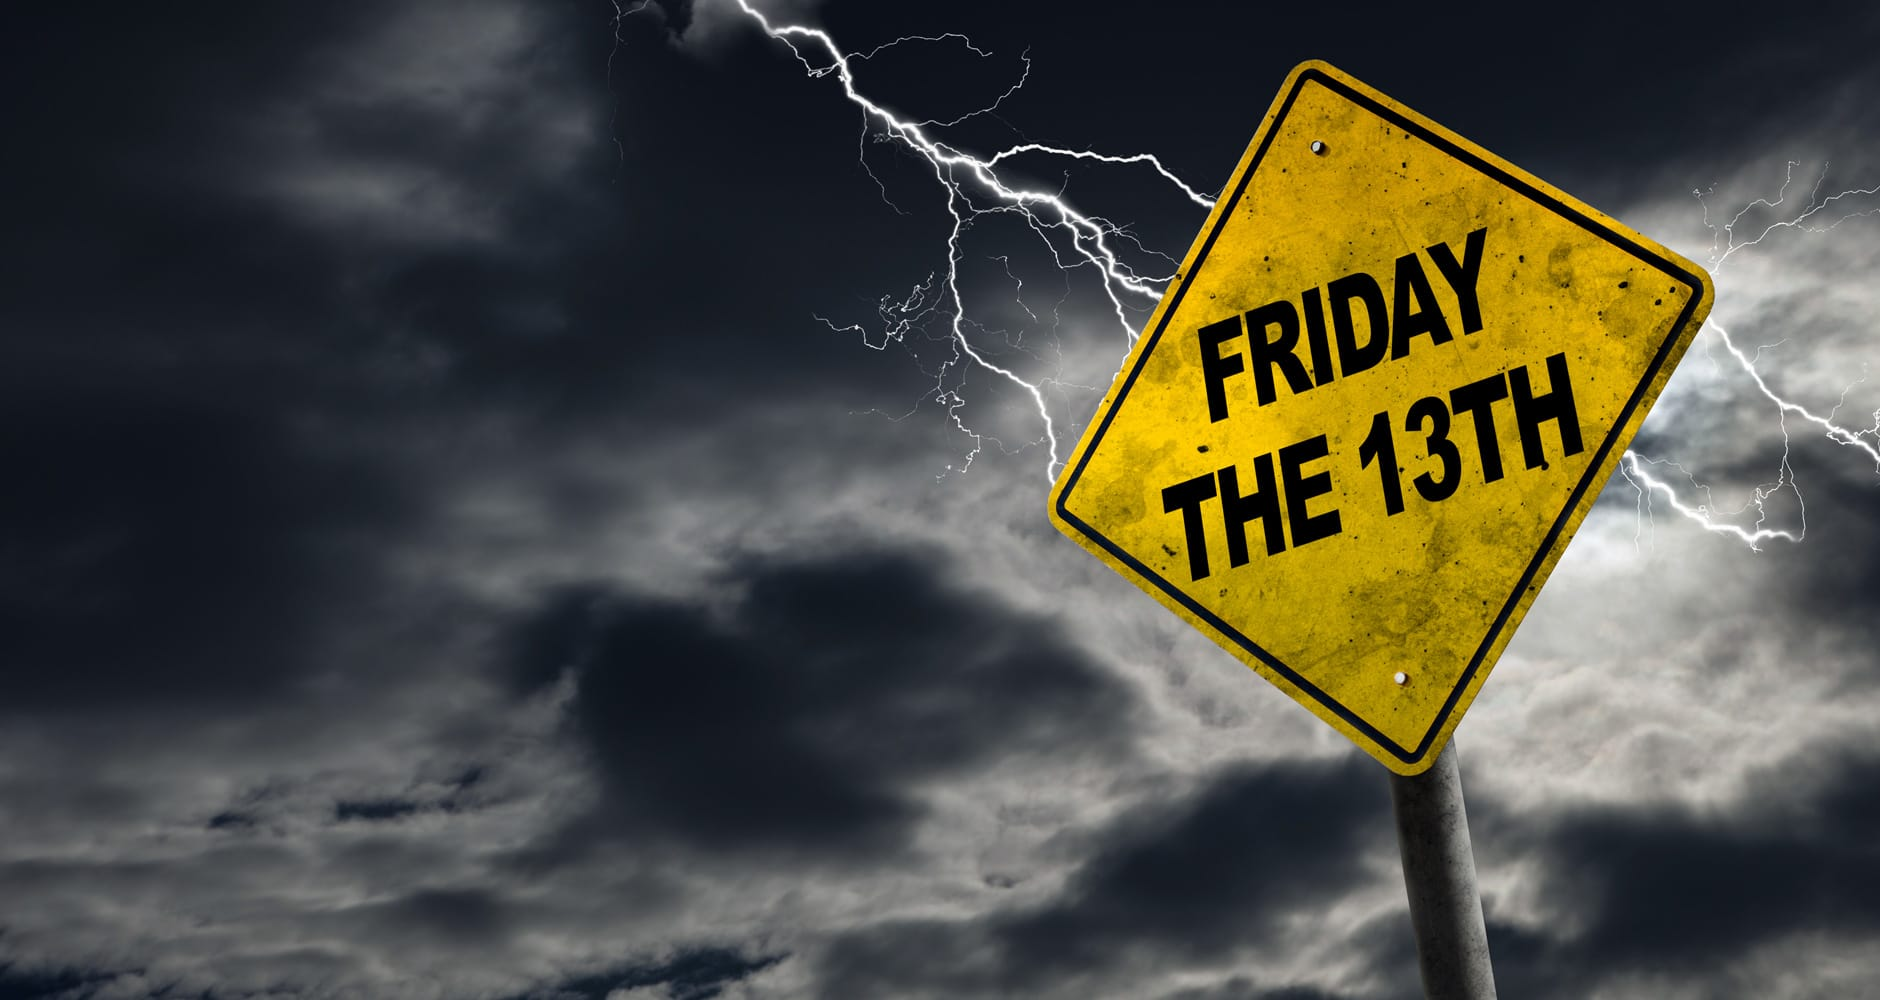 Top 10 Myths and Superstitions For Friday the 13thimage preview